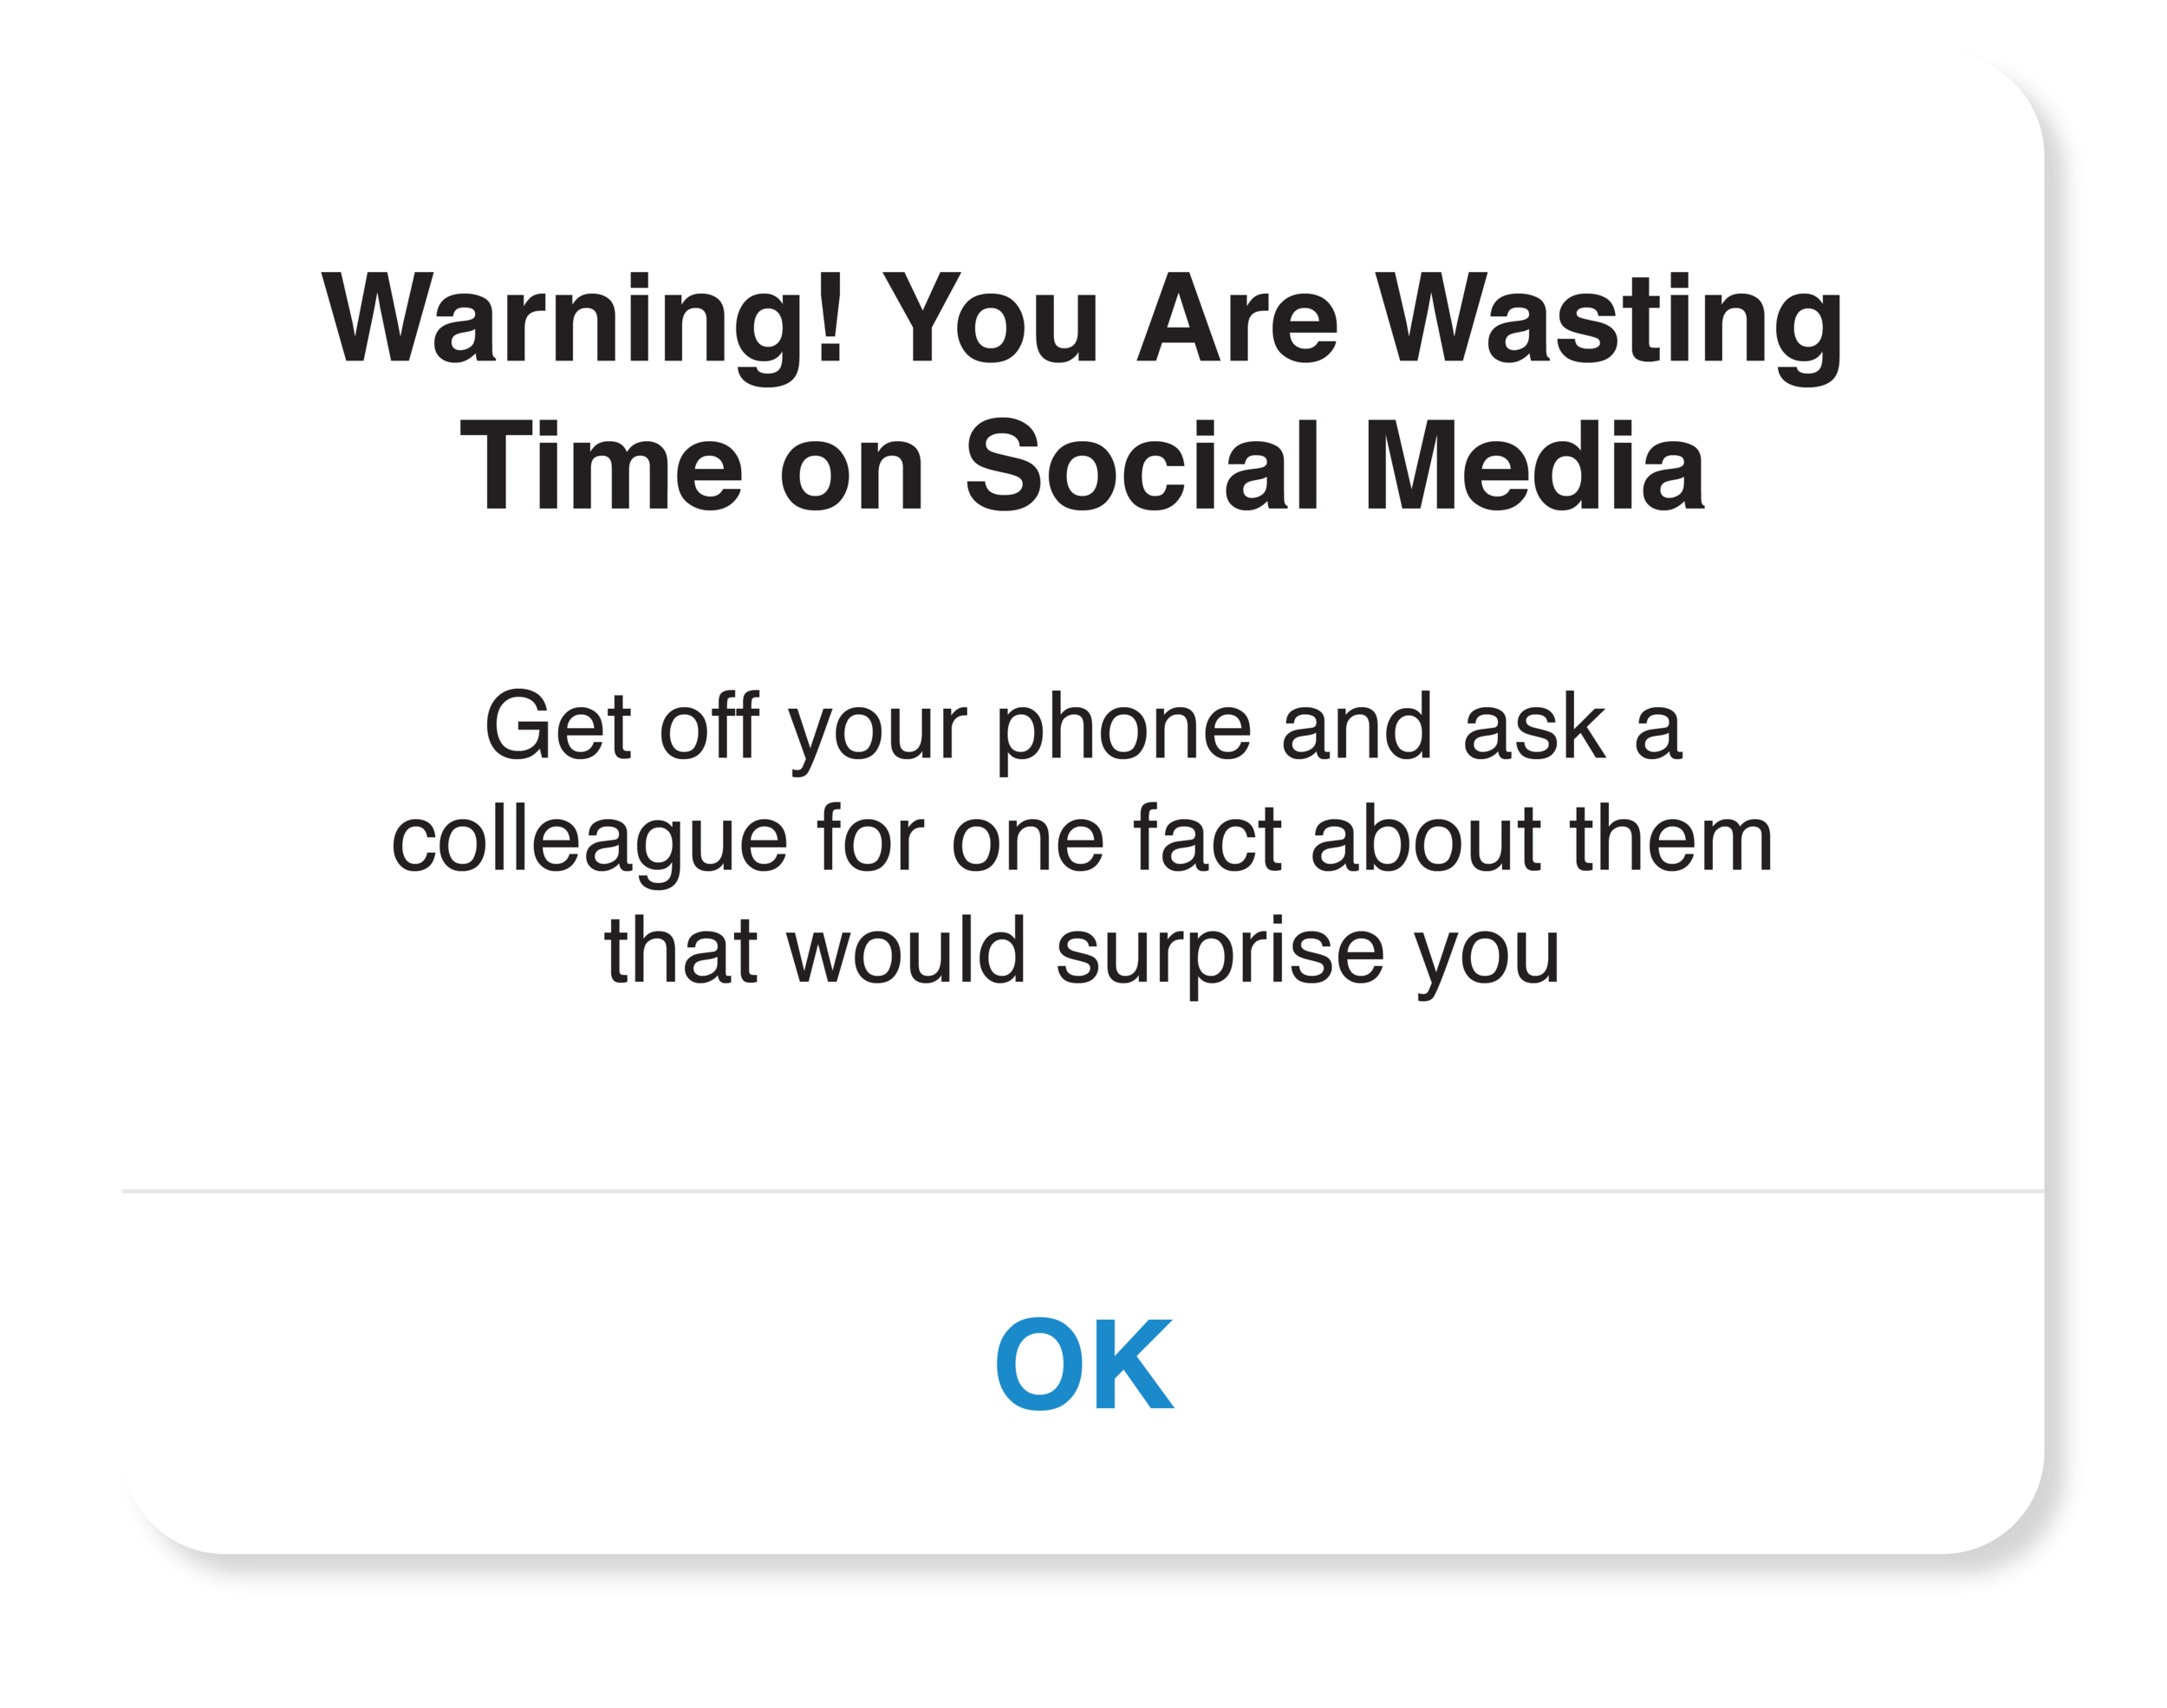 Warning Messages_IG Story_MOIC_012919-04.png